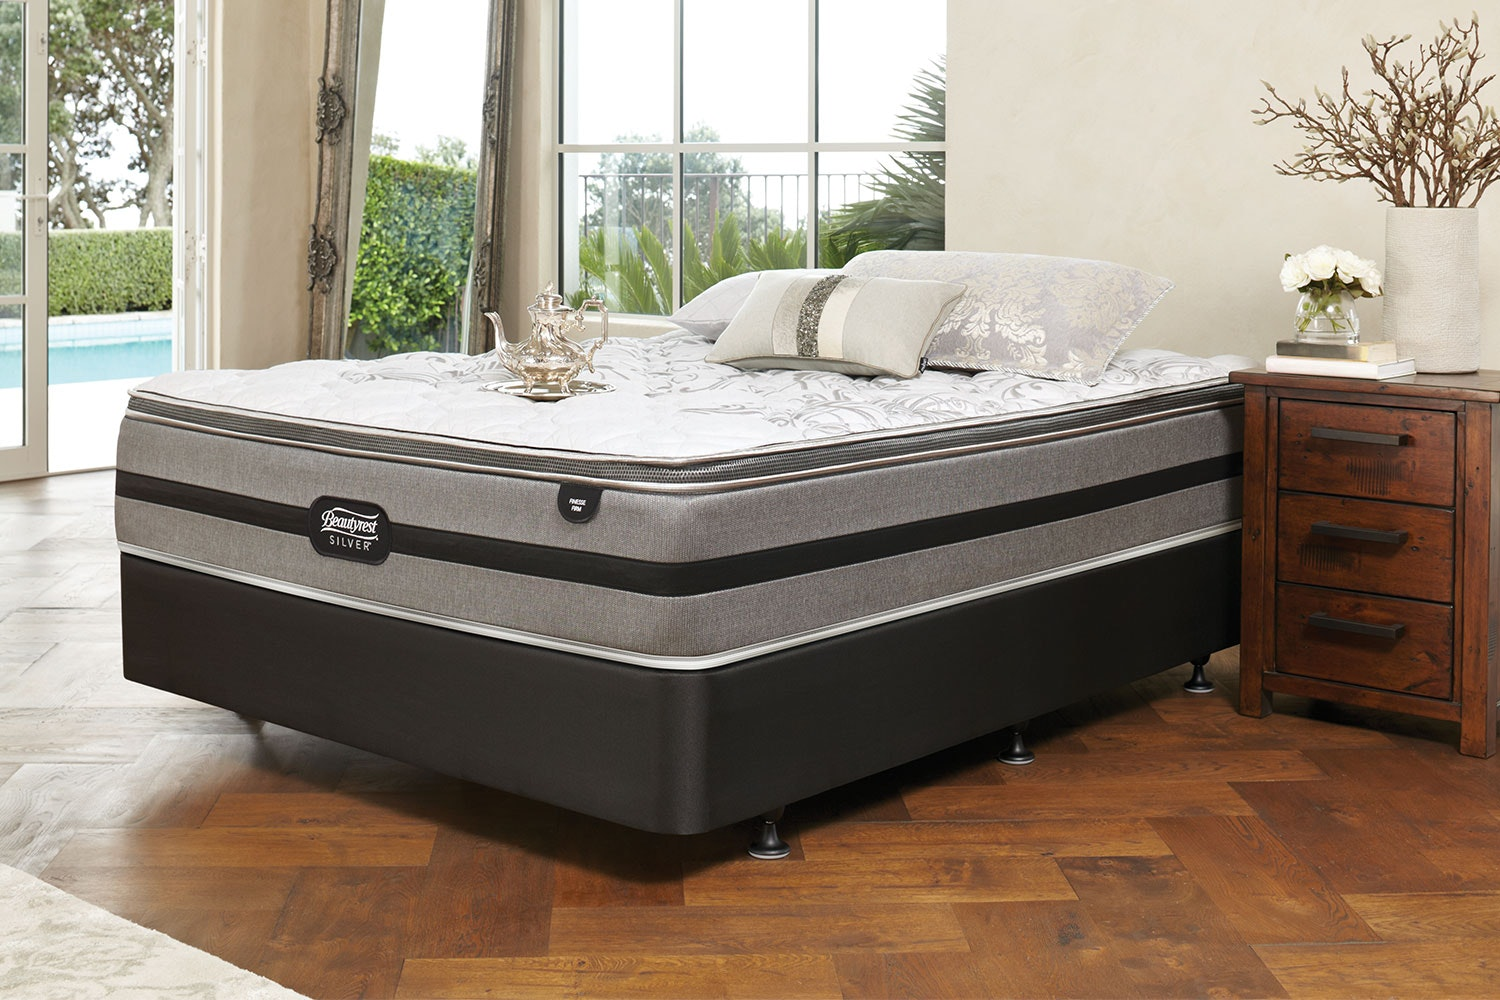 Finesse Firm Queen Bed by Beautyrest